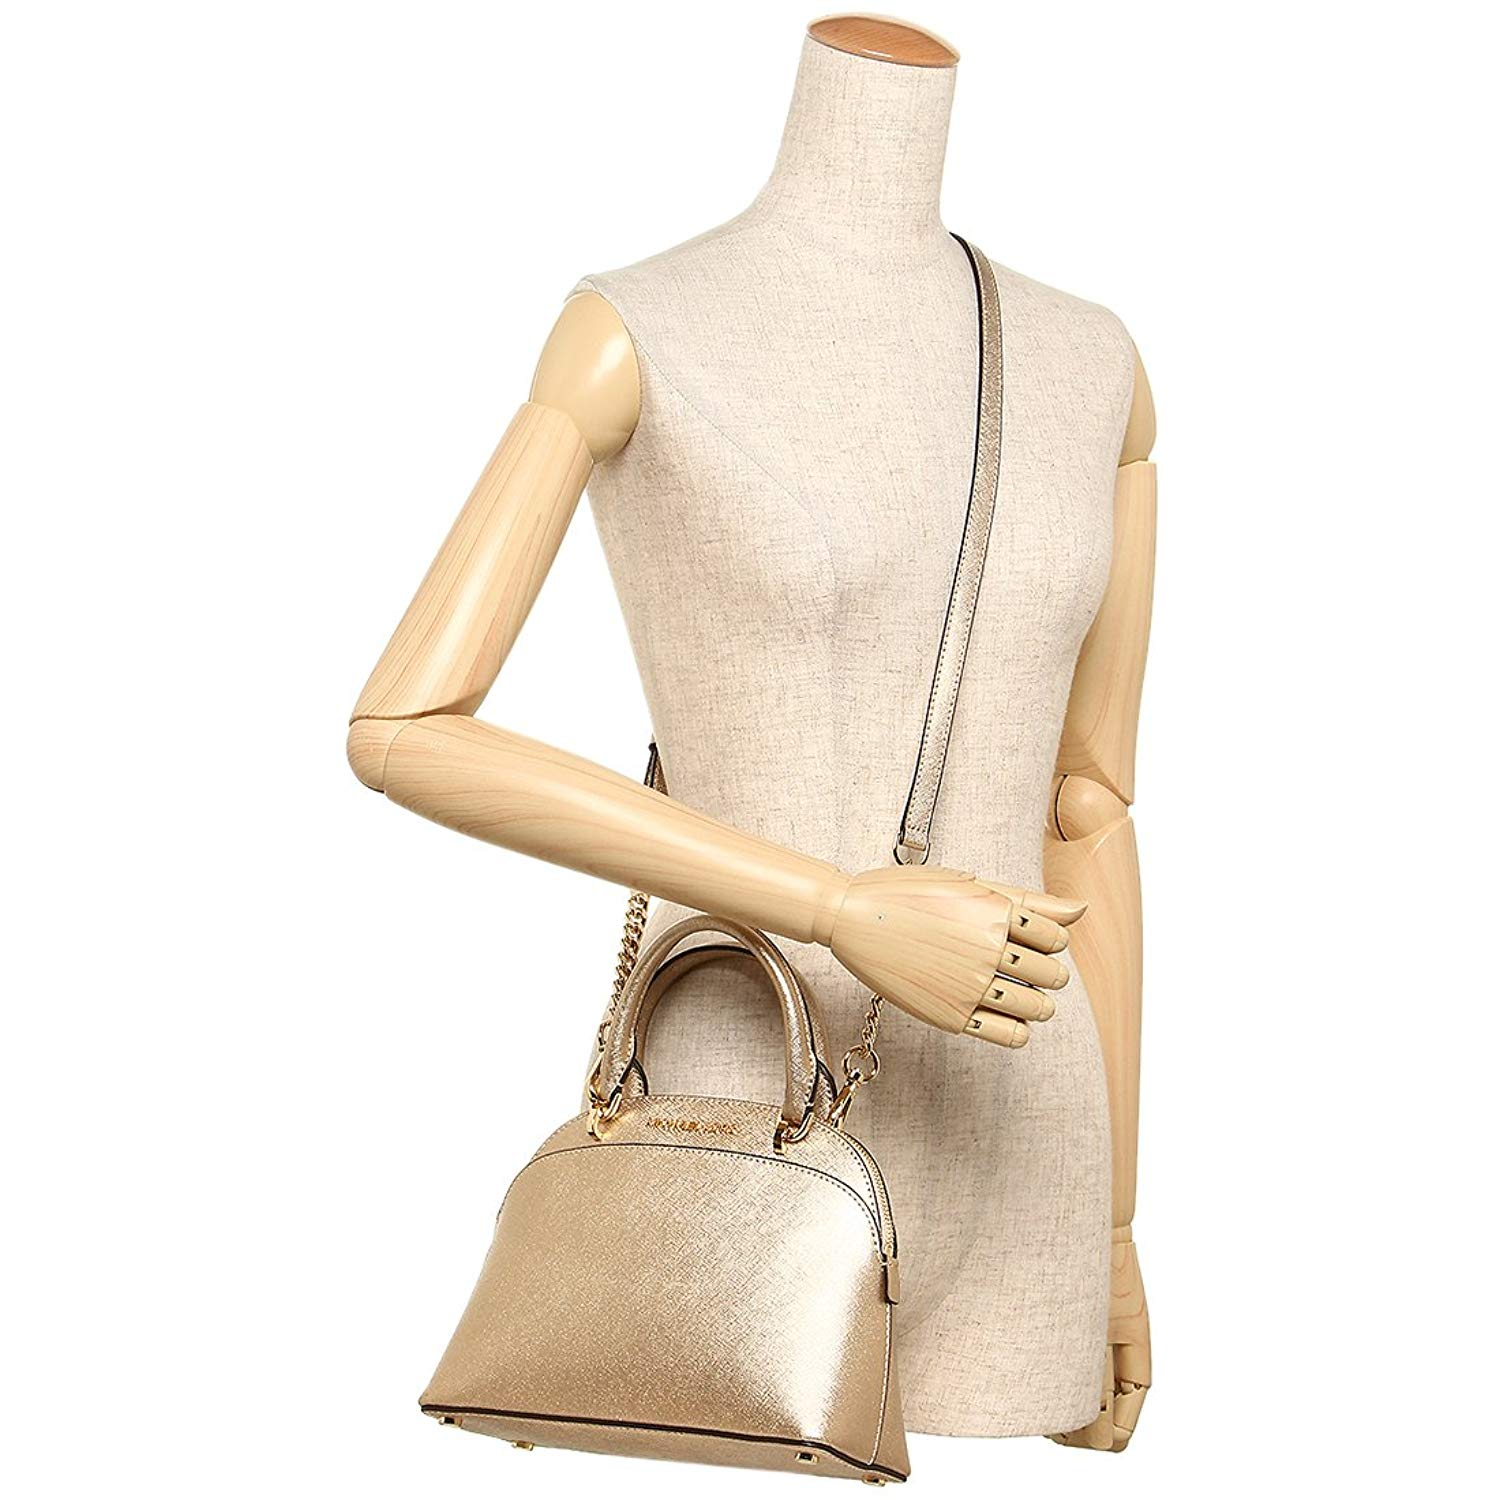 a7253b404f Michael Kors Emmy Small Dome Leather Satchel Crossbody Bag Gold   35H7MY3S1M